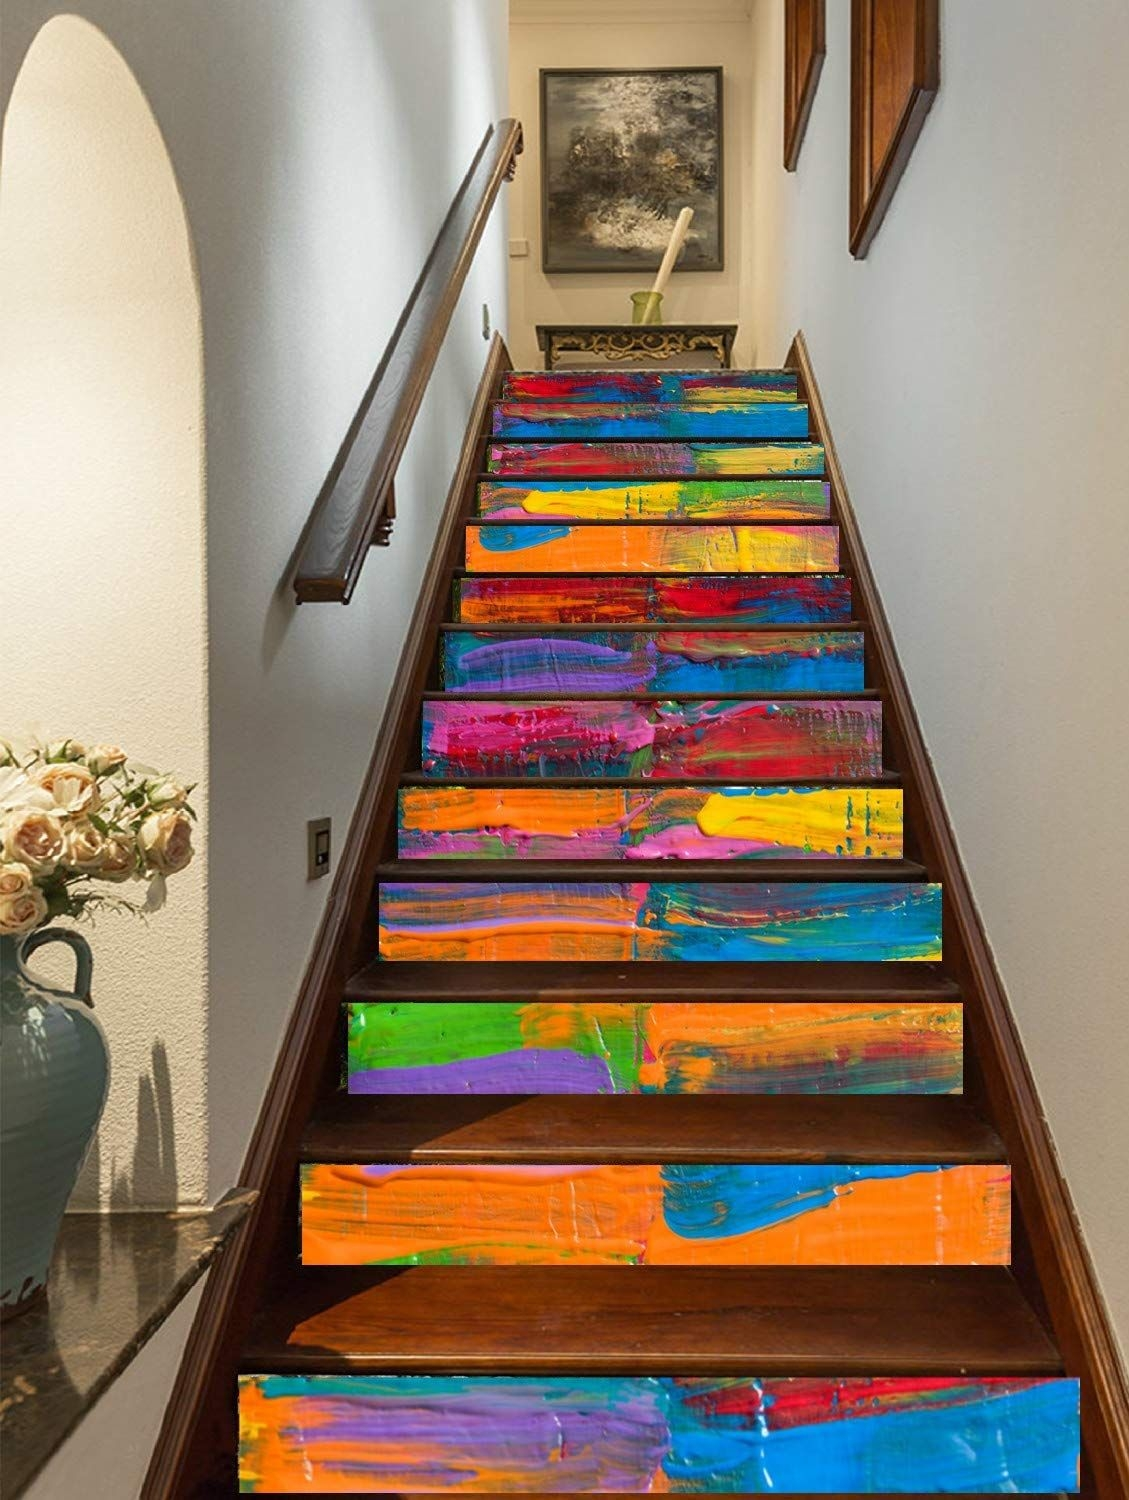 15 Of The Best Staircase Stickers And Tile Decals On Amazon | Floor Tiles Design For Stairs | Hallway Floor Tile | Stair Landing | House | Stair Riser | Wall